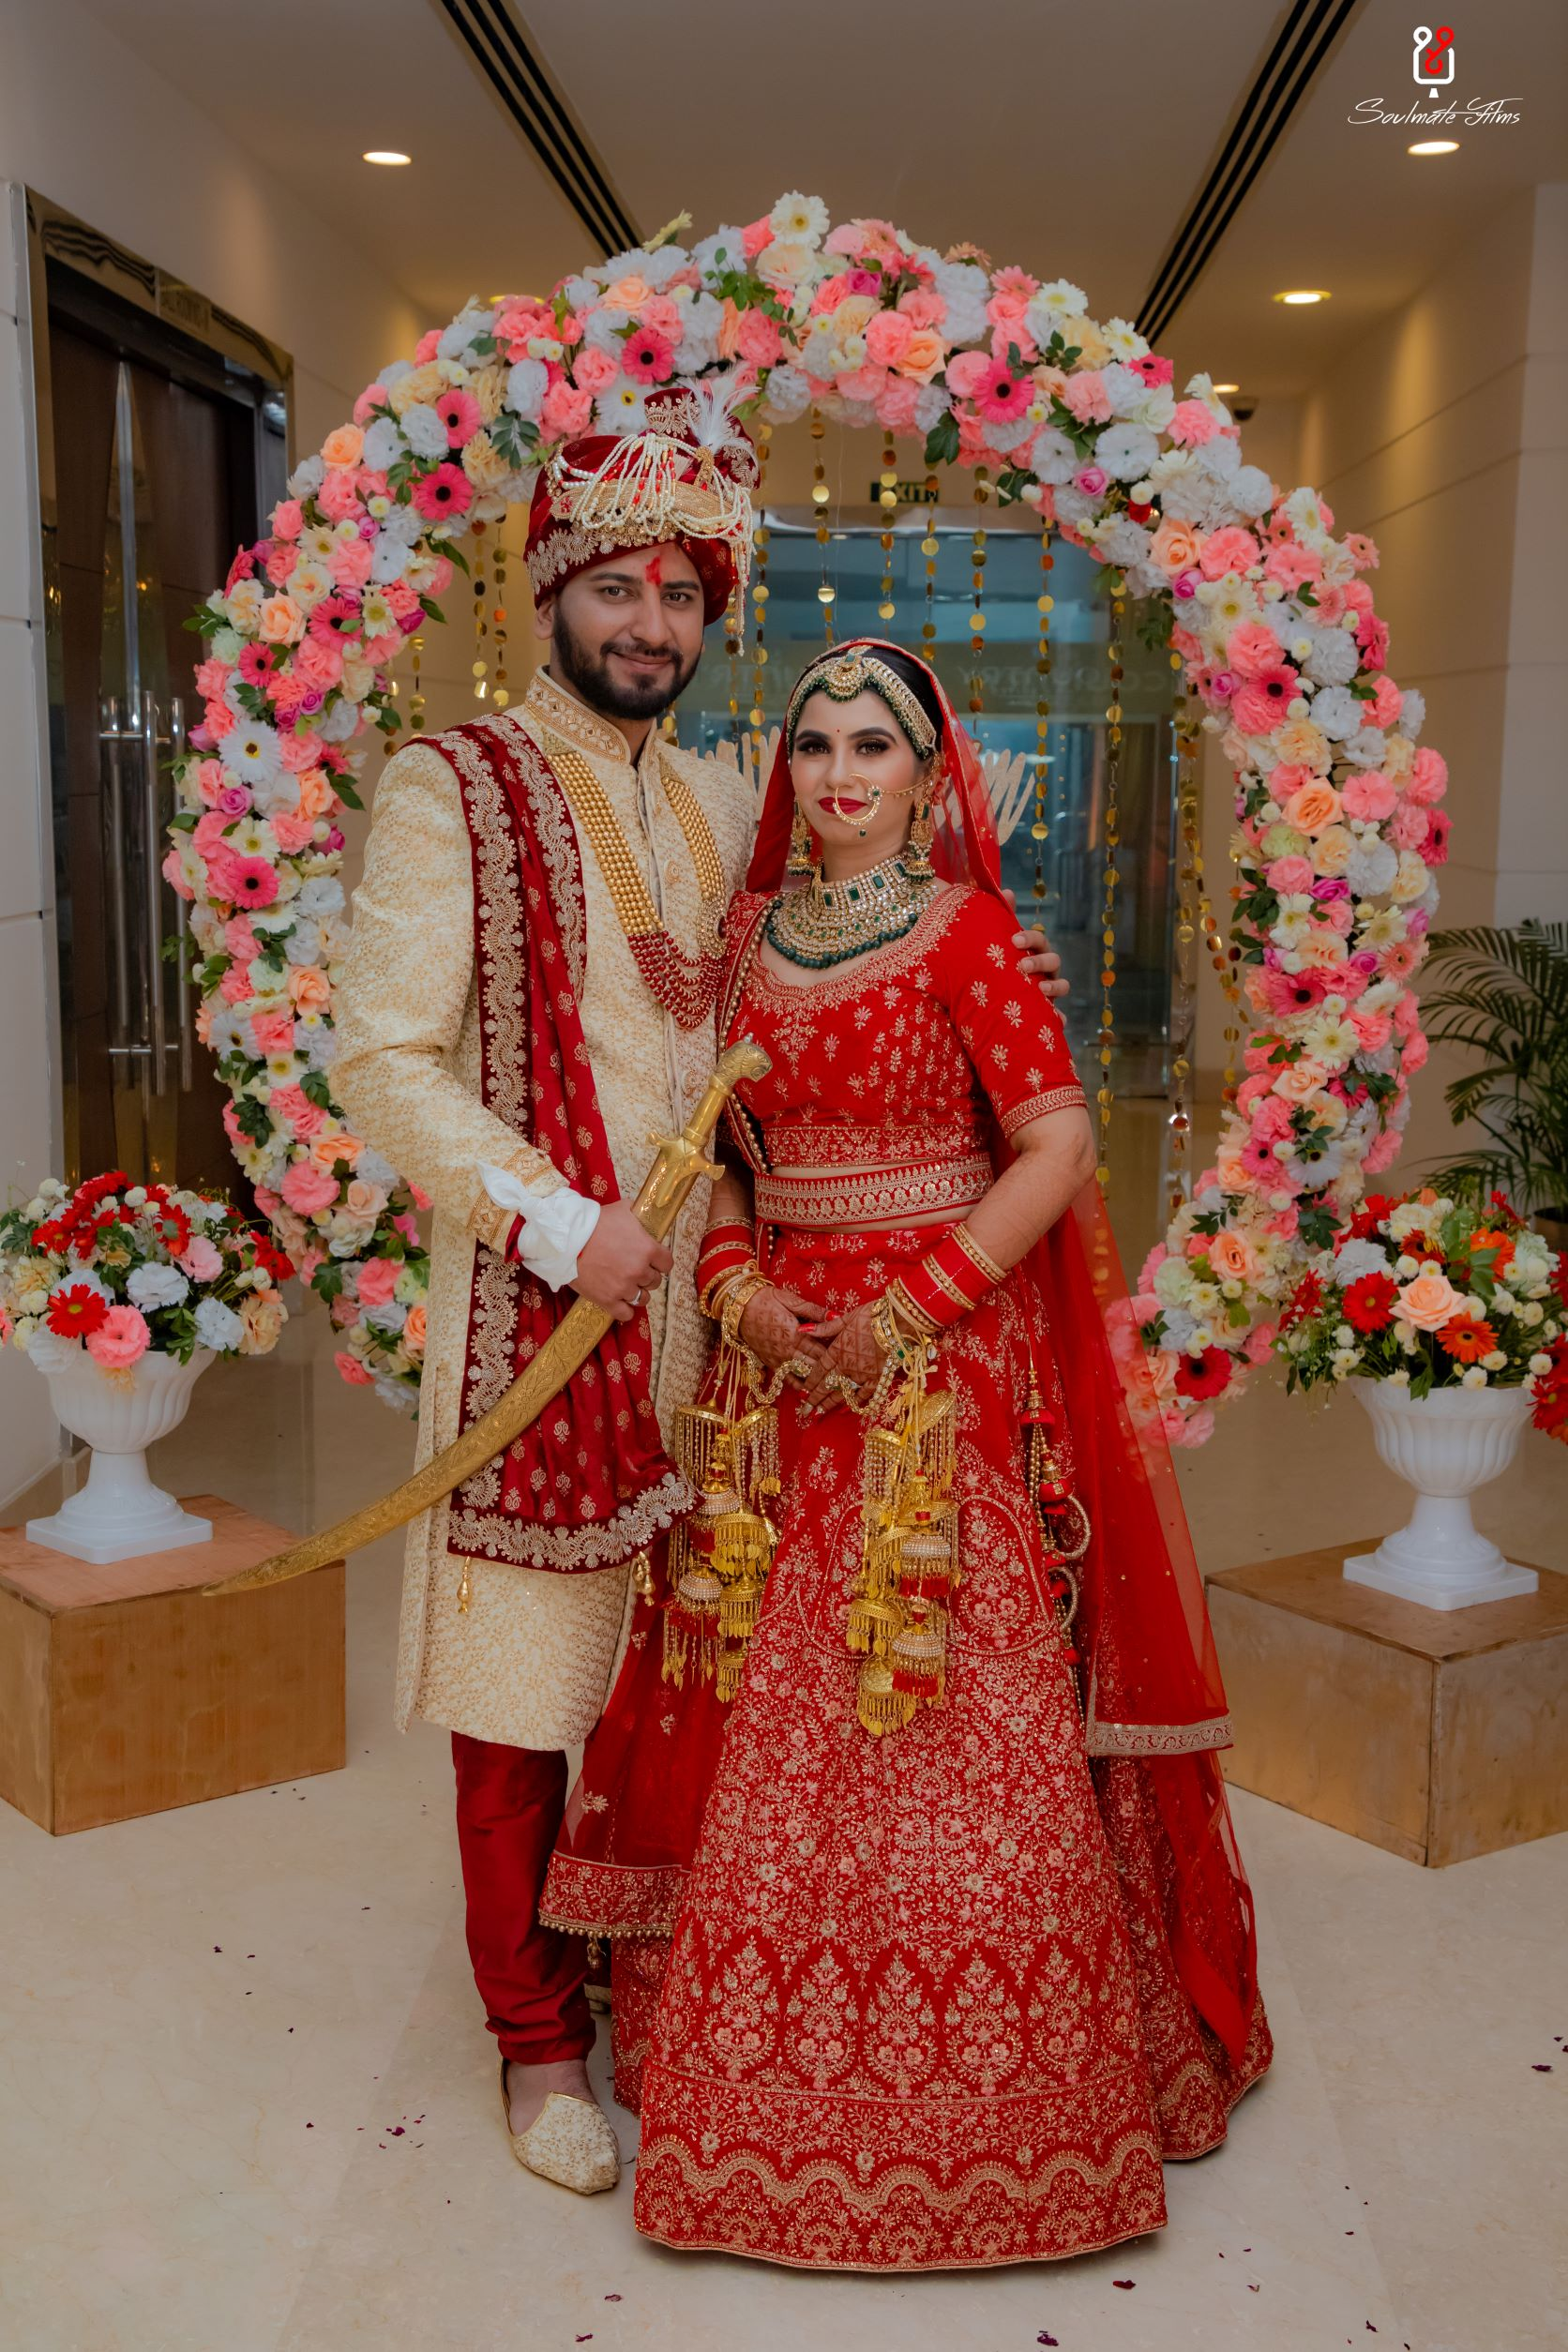 bride in red bridal lehenga poses with her groom